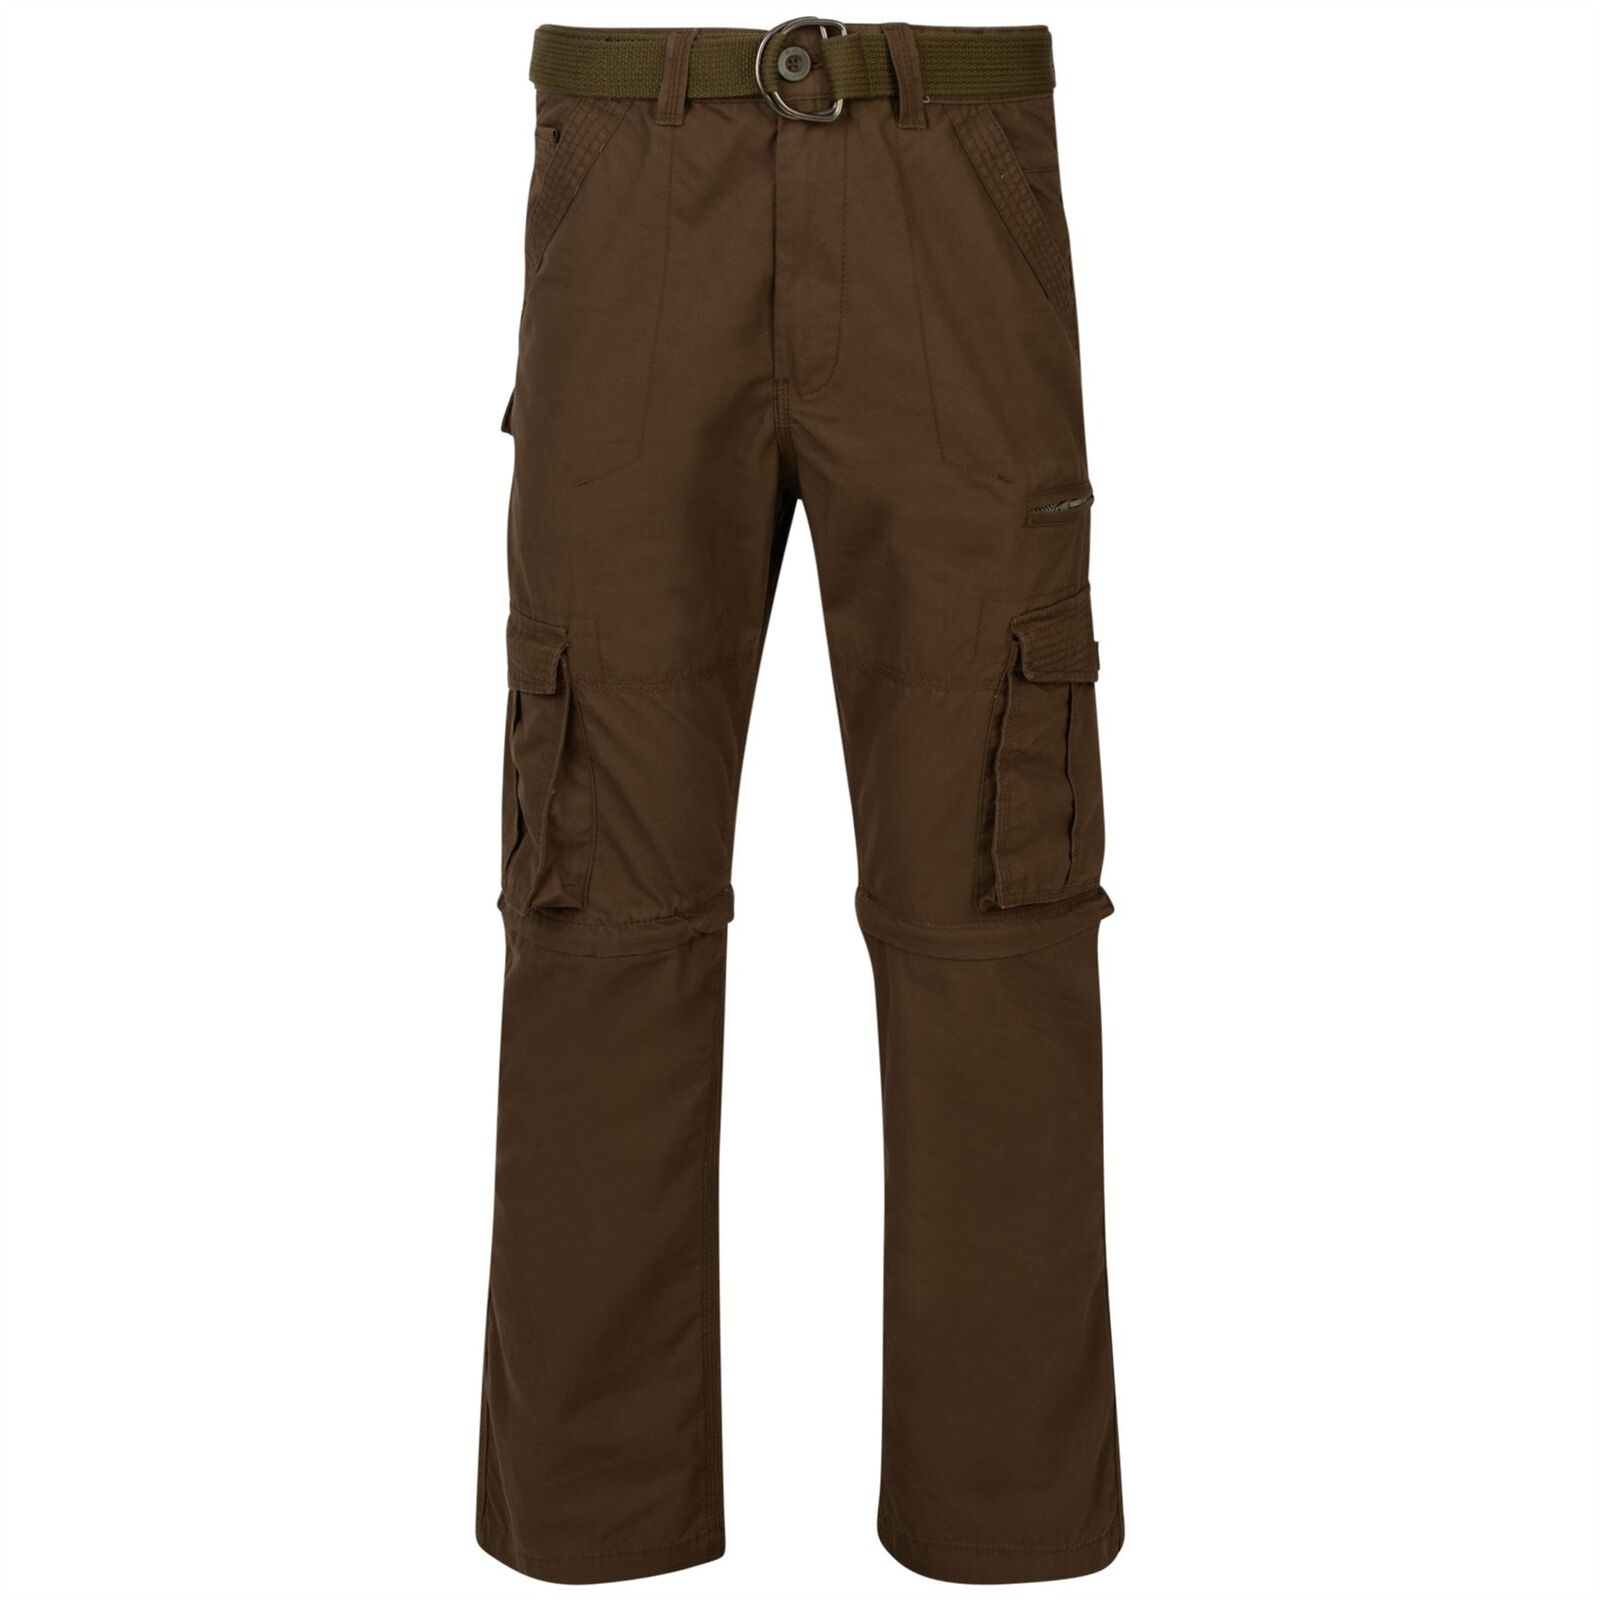 Kam Zip-Off Cargo Combat Trousers Brown 42 44 46 48 50 52 54 56 58 60 62 64